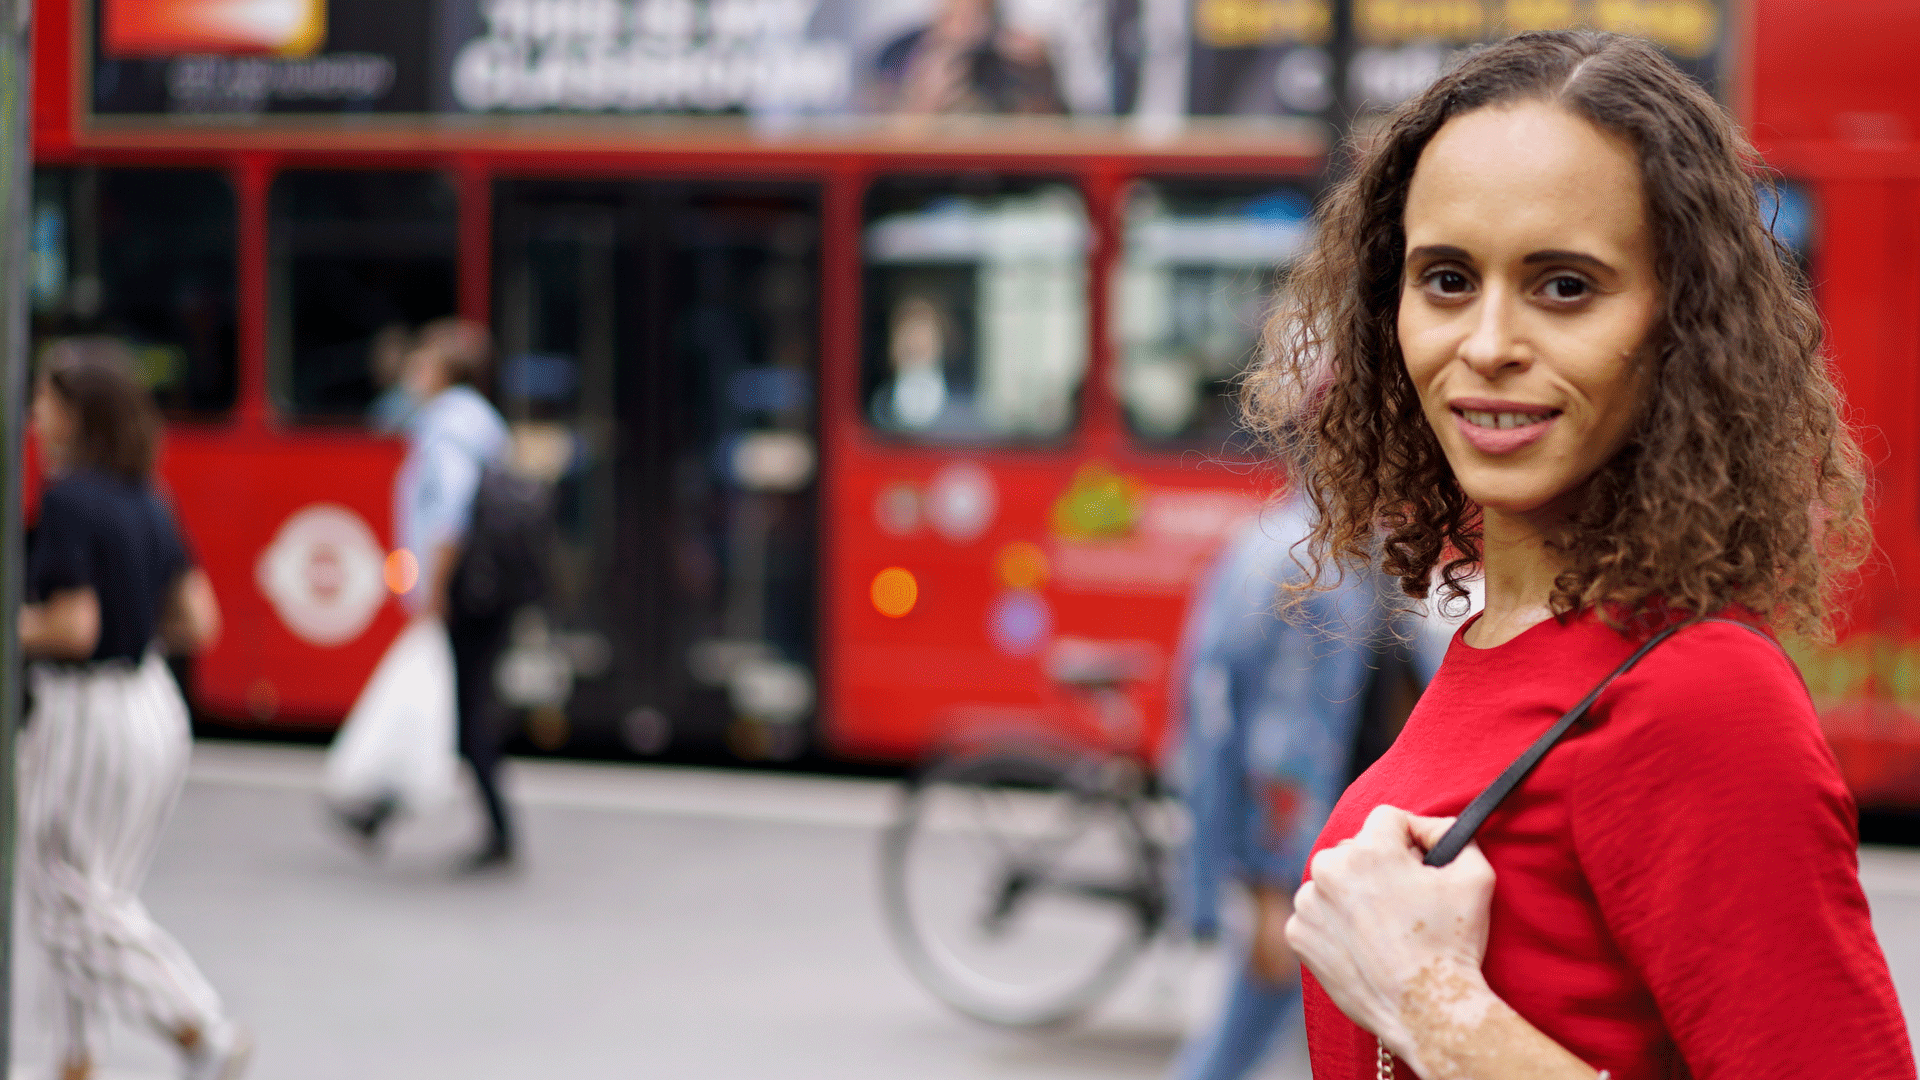 Natalie outside, smiling and looking confidently to camera, with a London bus in the background